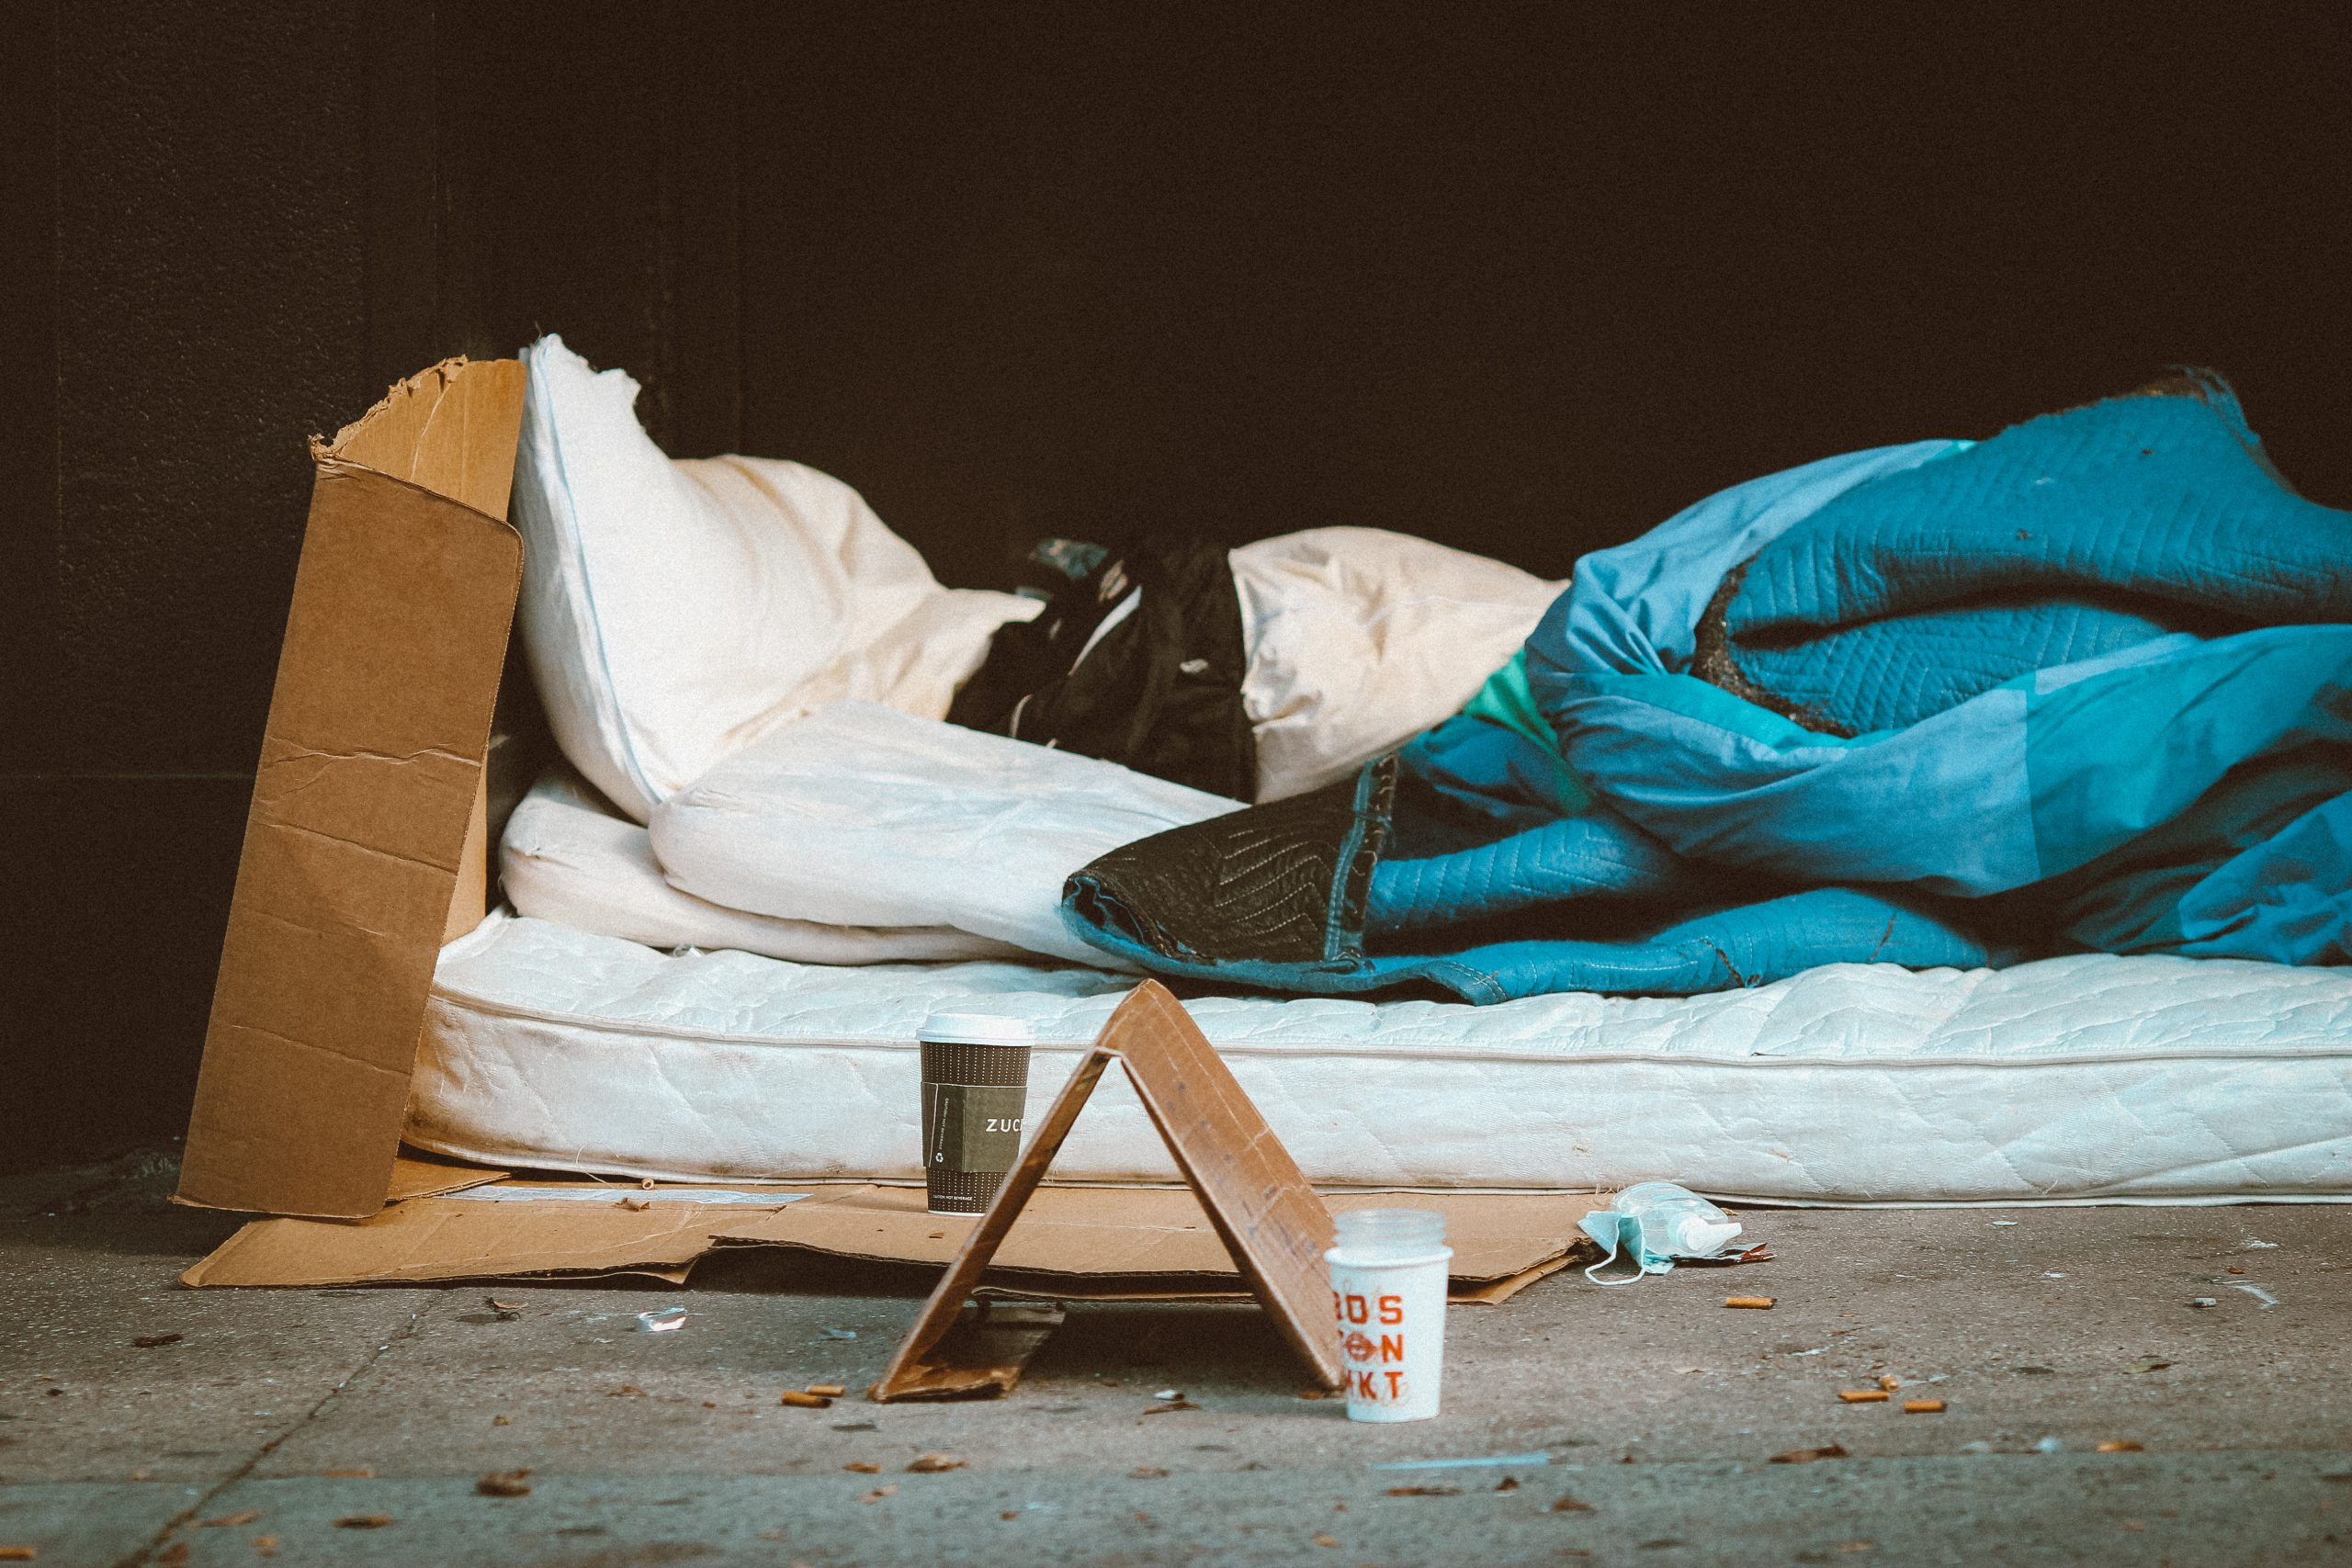 A homeless person sleeps on a mattress out in the open. A cardboard sign is next to them and they are wrapped in a blue sleeping bag.